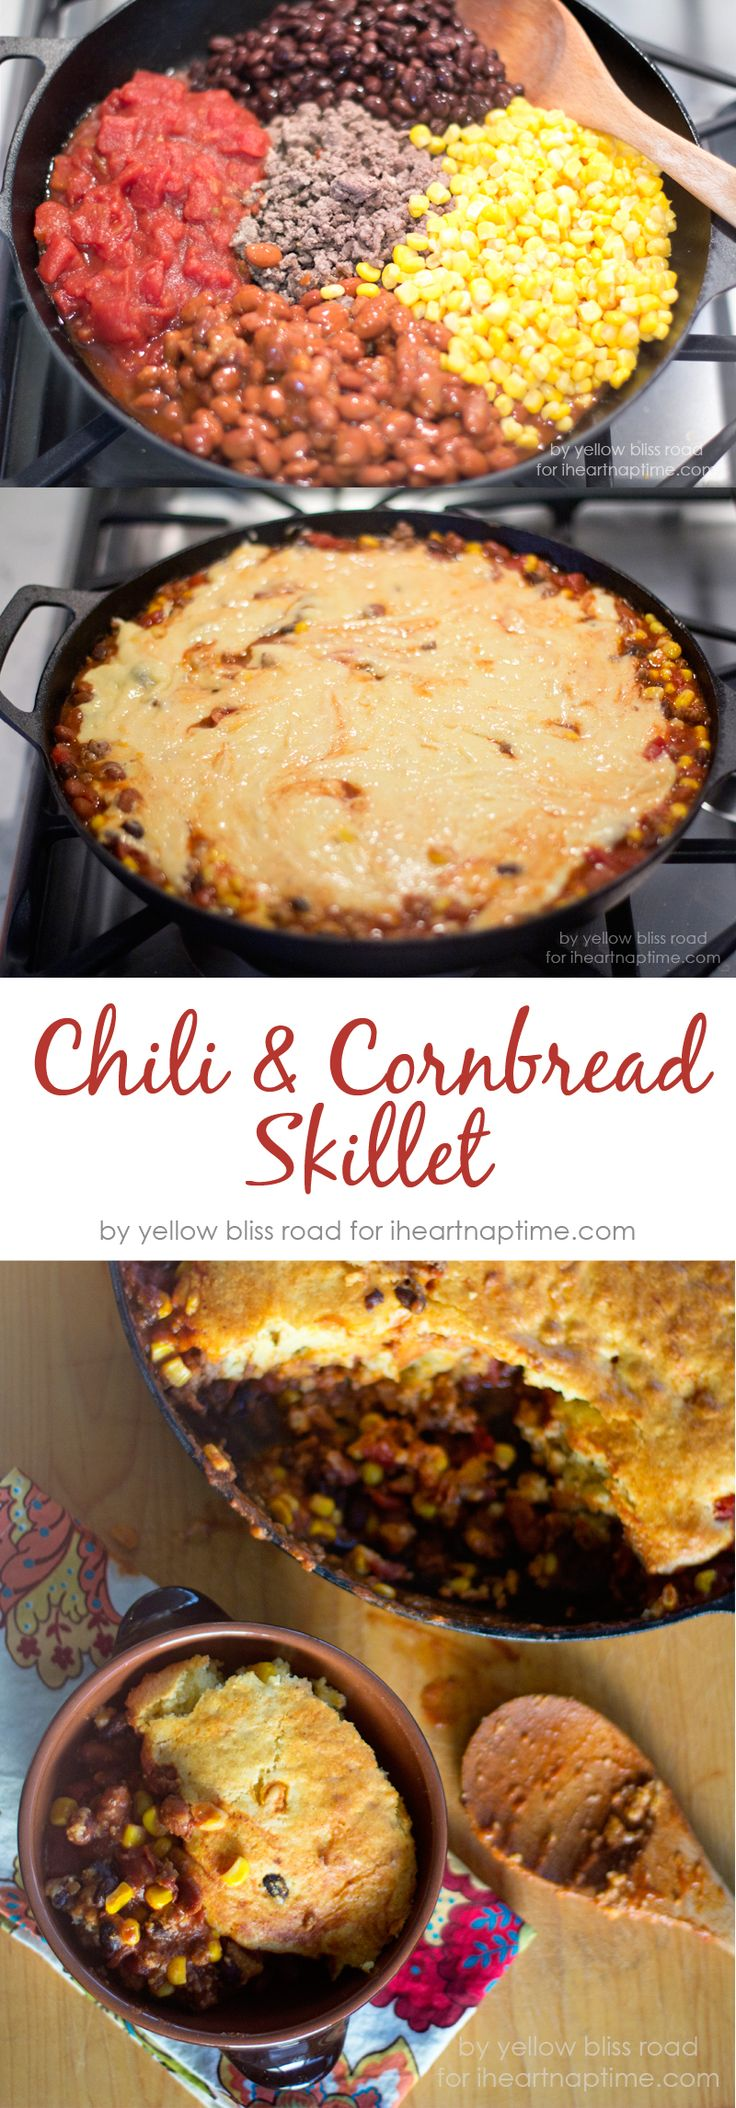 Chili and Cornbread Skillet on http://iheartnaptime.com ...the perfect dinner recipe for fall! YUM! I'm going to omit the meat.